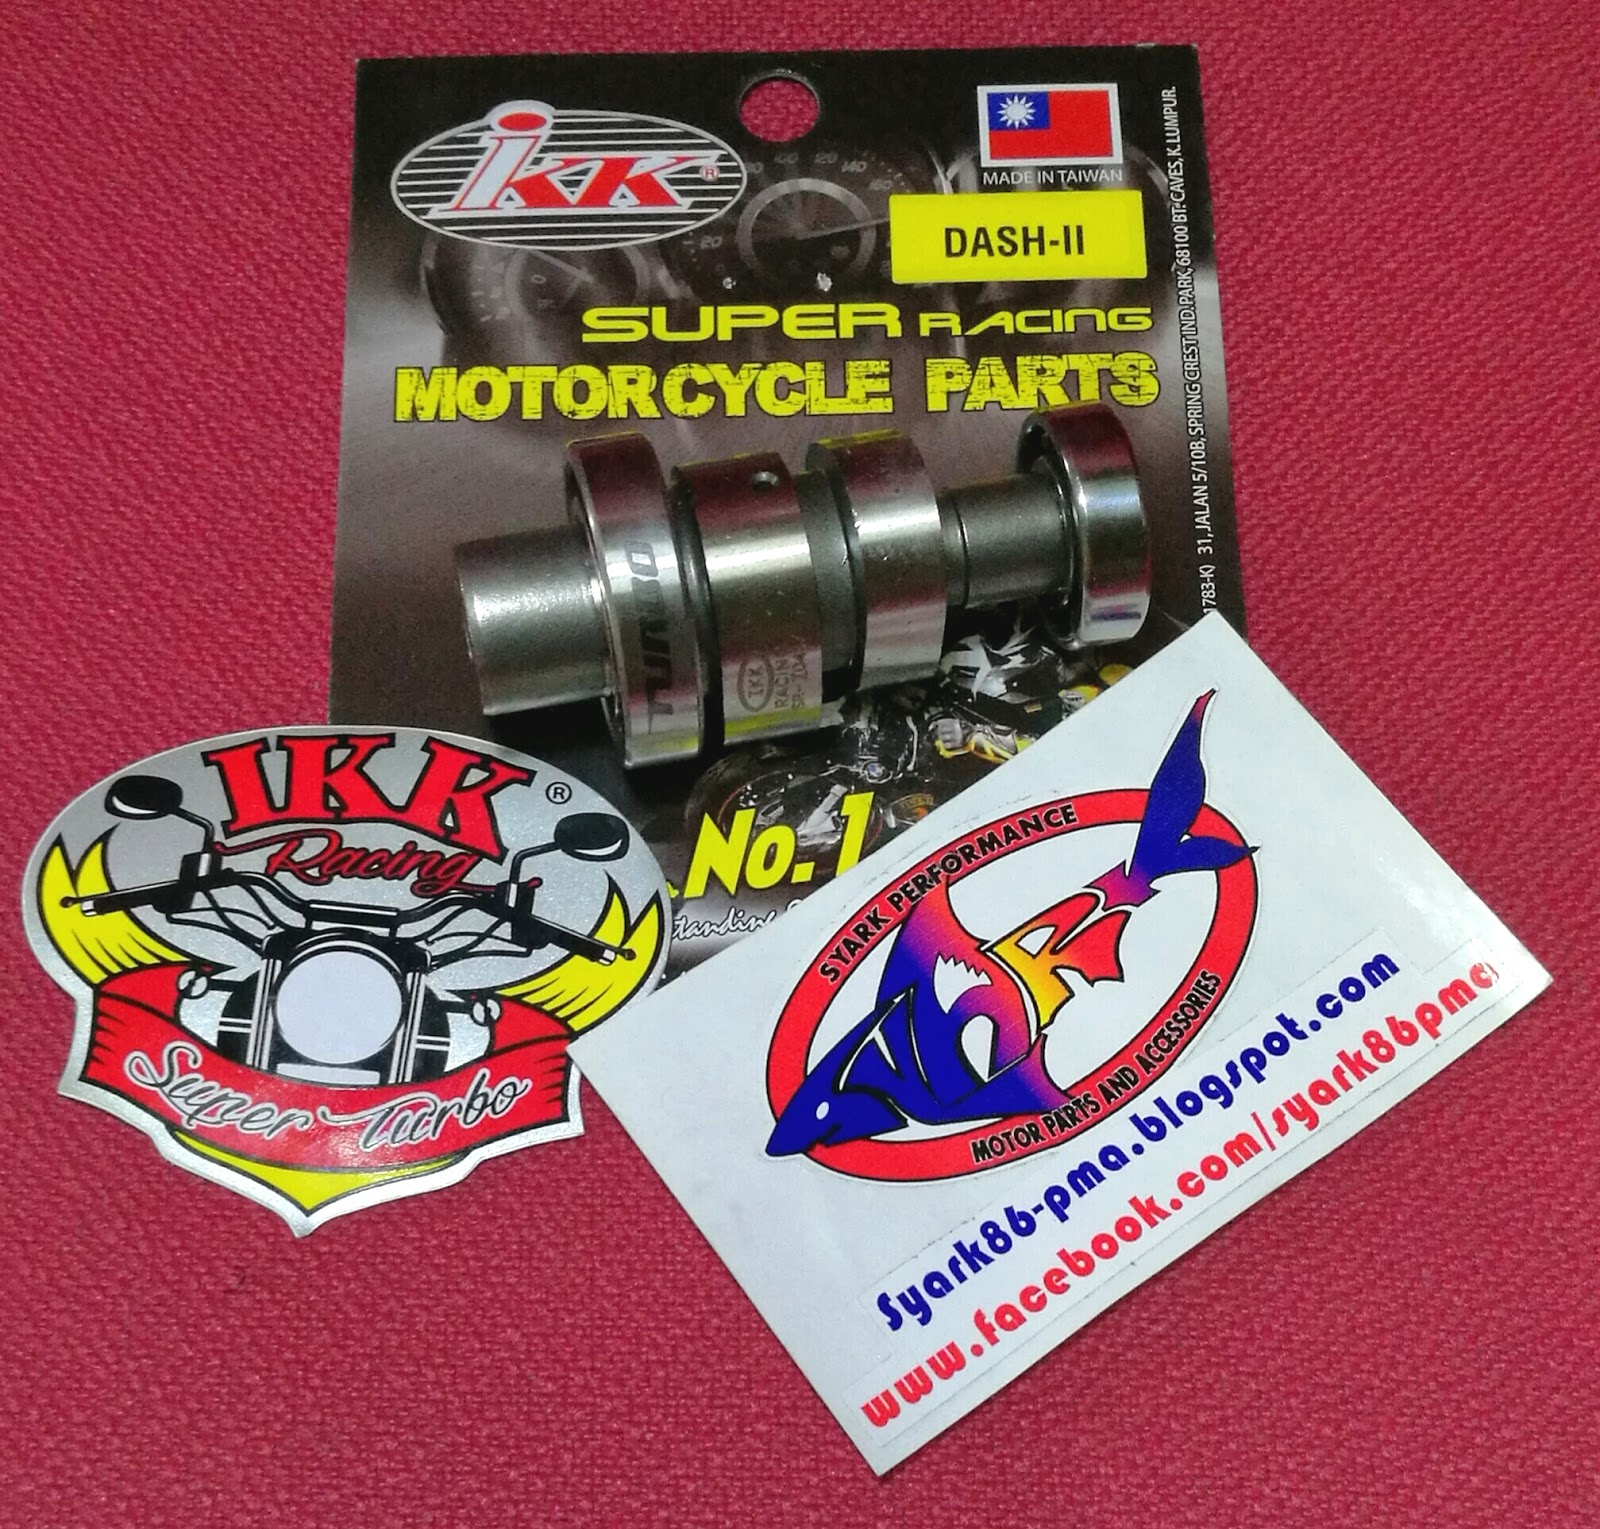 small resolution of new ikk racing camshaft w bearings honda wave dash v2 wave dash fi wave dx honda wave alpha ex5 dream 110 ex5 dream fi new blade 110 fi new revo 110